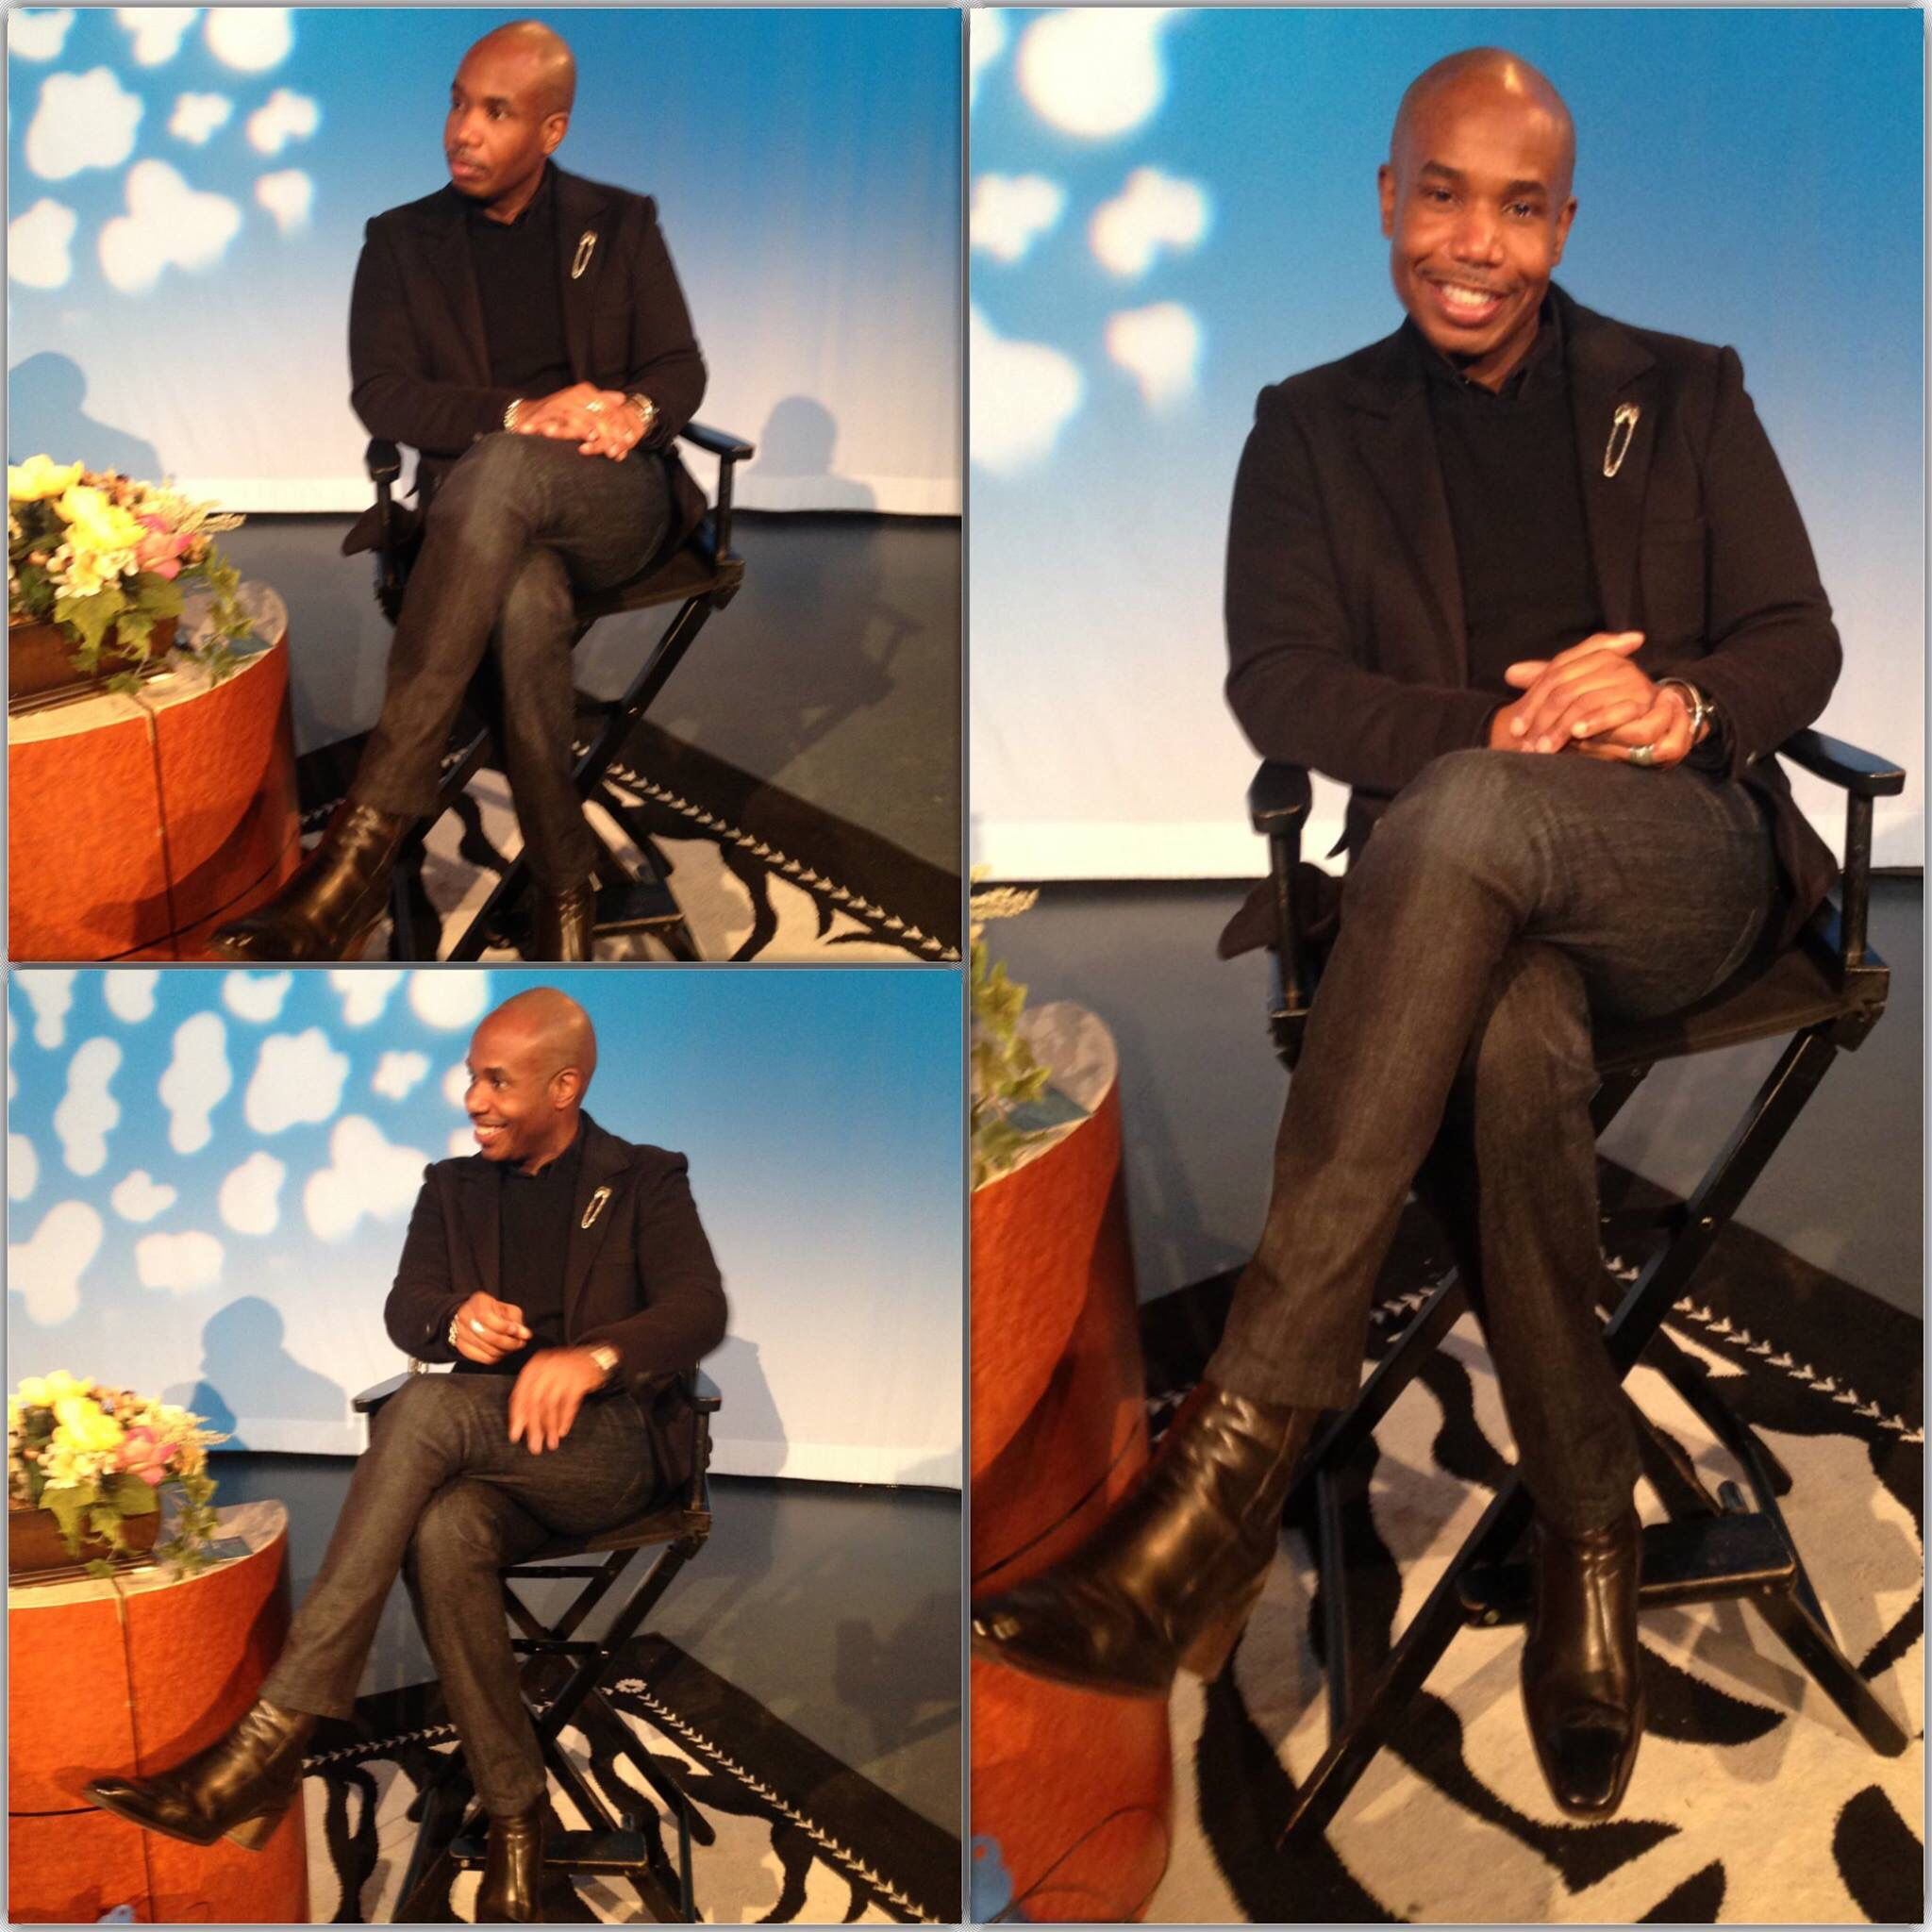 """""""Personal style can not be duplicated, only enhanced."""" Celebrity Fashion Stylist, Image Consultant and LIM Adjunct Professor, Carlton Spence, on the next Model Behavior with Sharon Quinn. Carlton will discuss garment construction, fit and image/fashion styling.  Model Behavior with Sharon Quinn airs every Saturday Morning @ 11:30AM on MNN Lifestyle Channel 2 (FIOS 34, RNC 83, TWC 56 and 1996 and TWC HD 1995).  Live Stream: http://goo.gl/twpvGL  #ModelBehaviorwithSharonQuinn #MBWSQ…"""